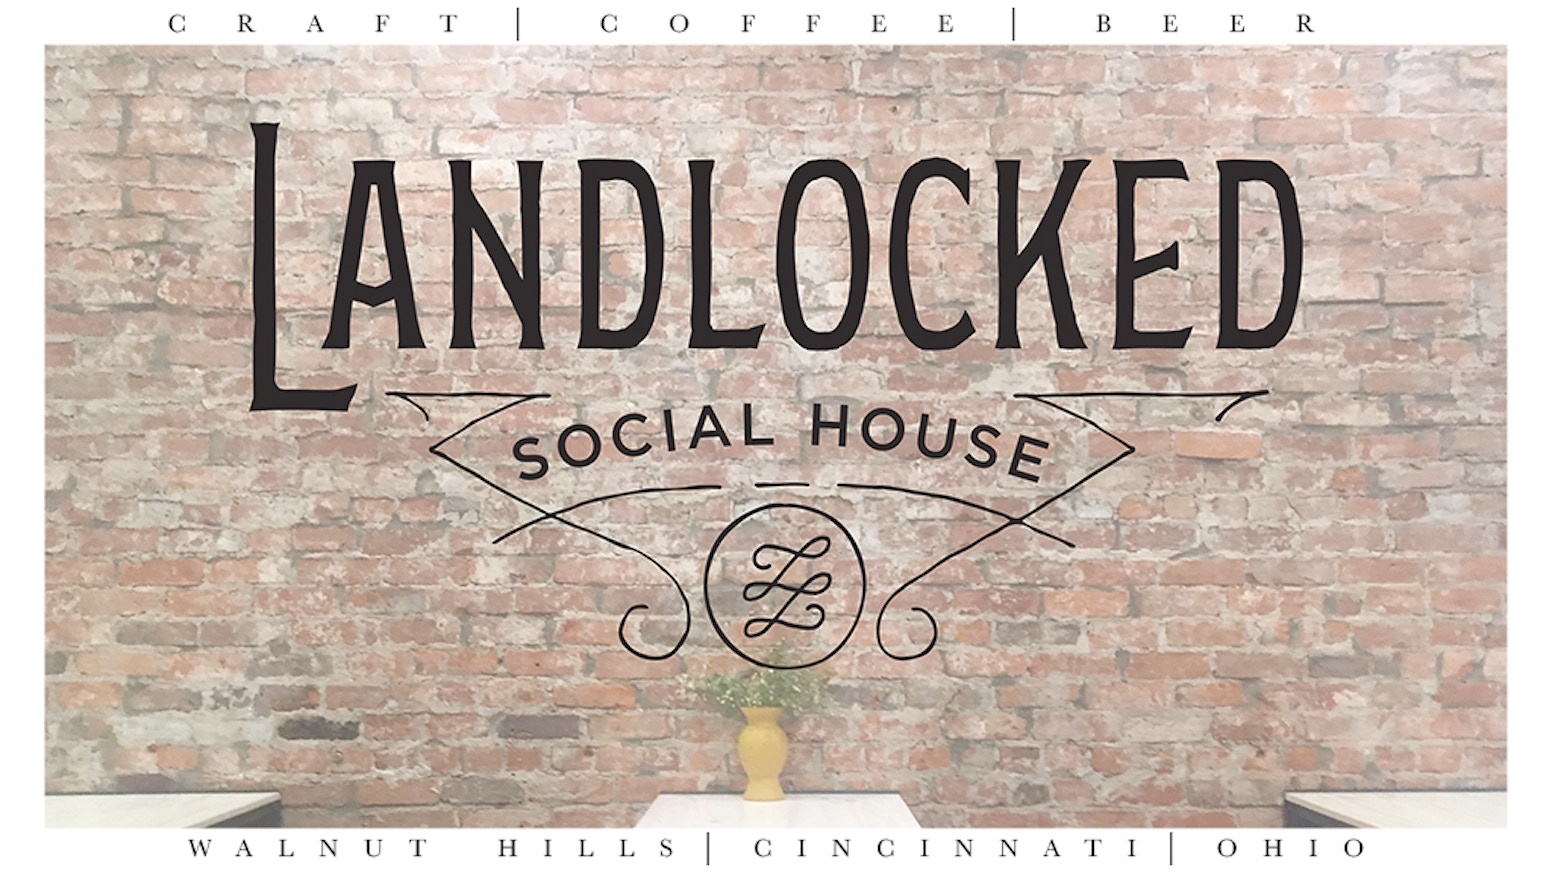 View Landlocked Social House  Images